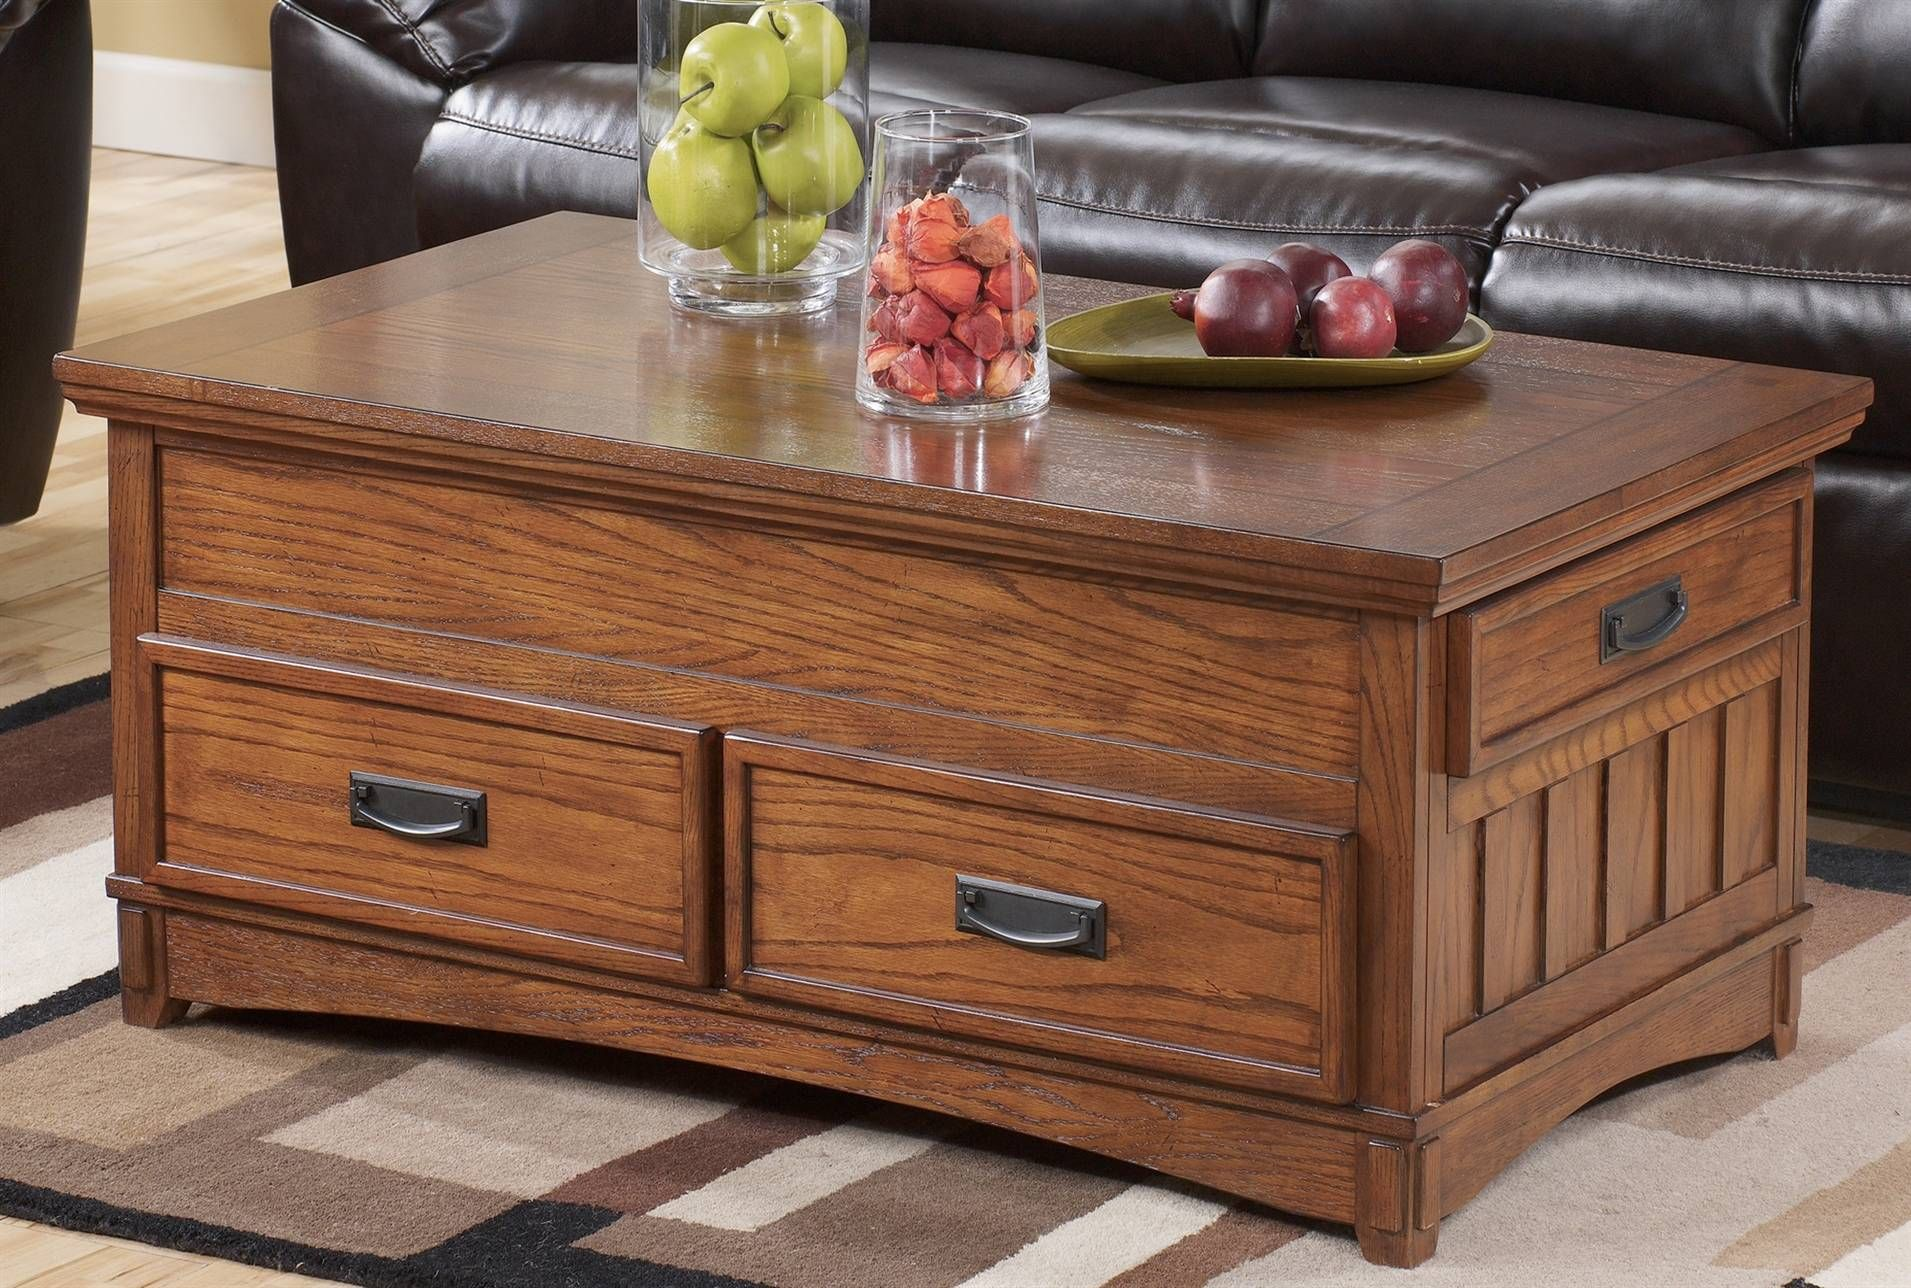 Shop Furniture Online Furniture Store Same Day Delivery [ 1288 x 1911 Pixel ]